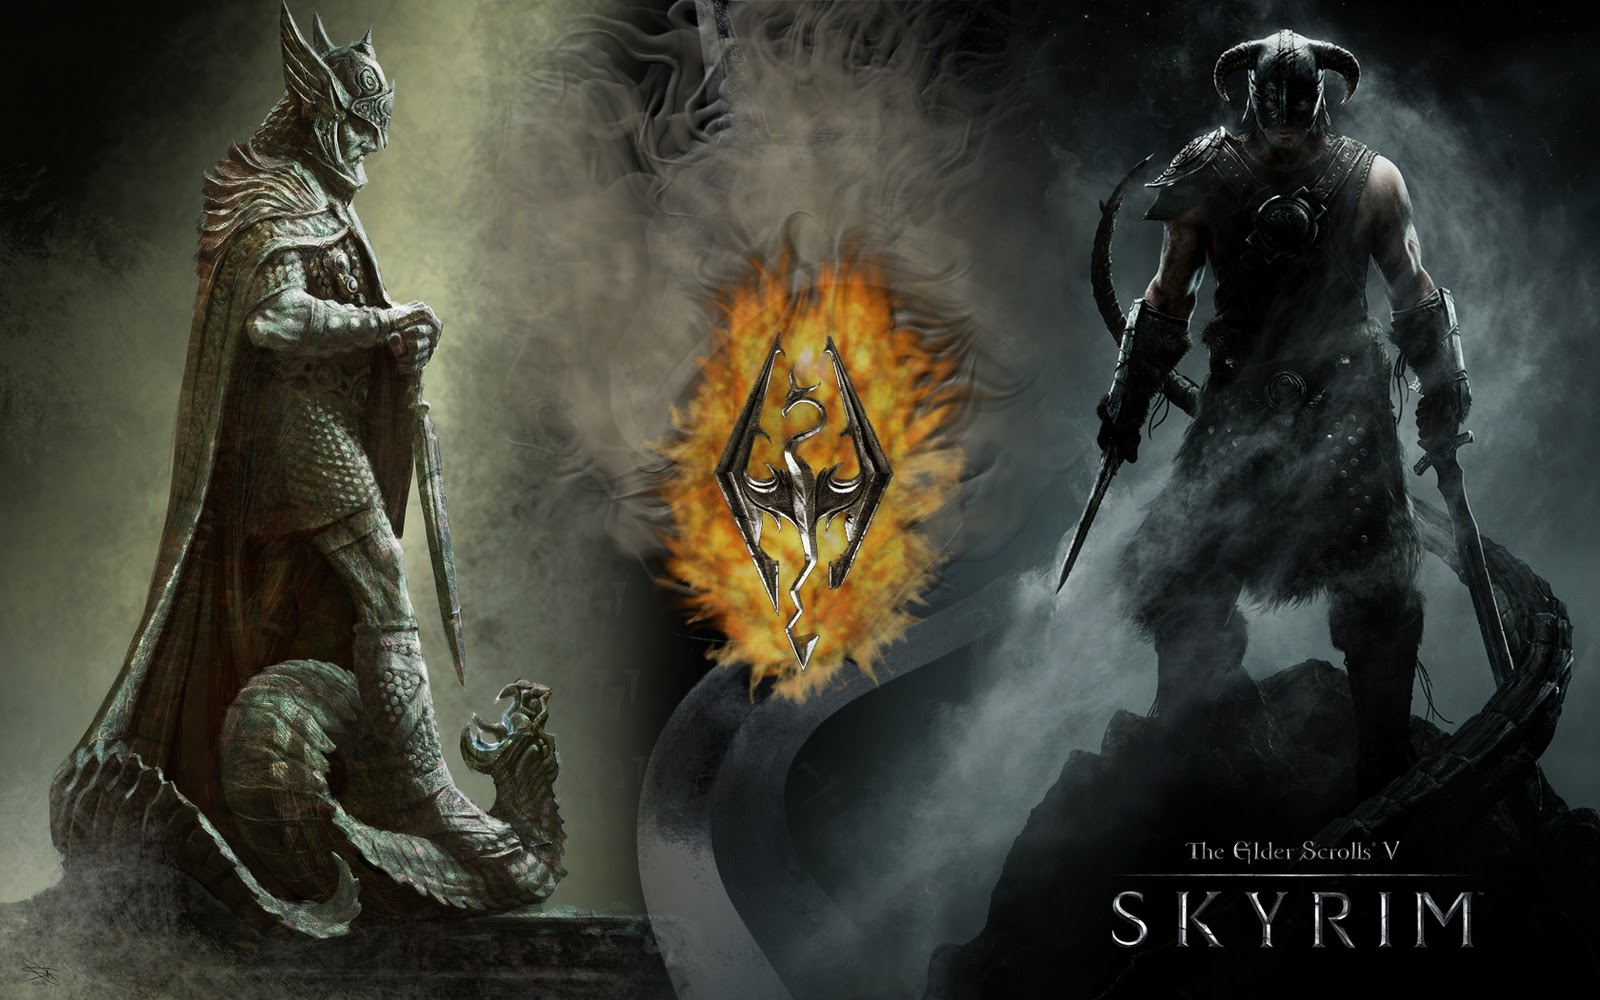 skyrim fanart: wallpaper featuring talos and the dragonborn